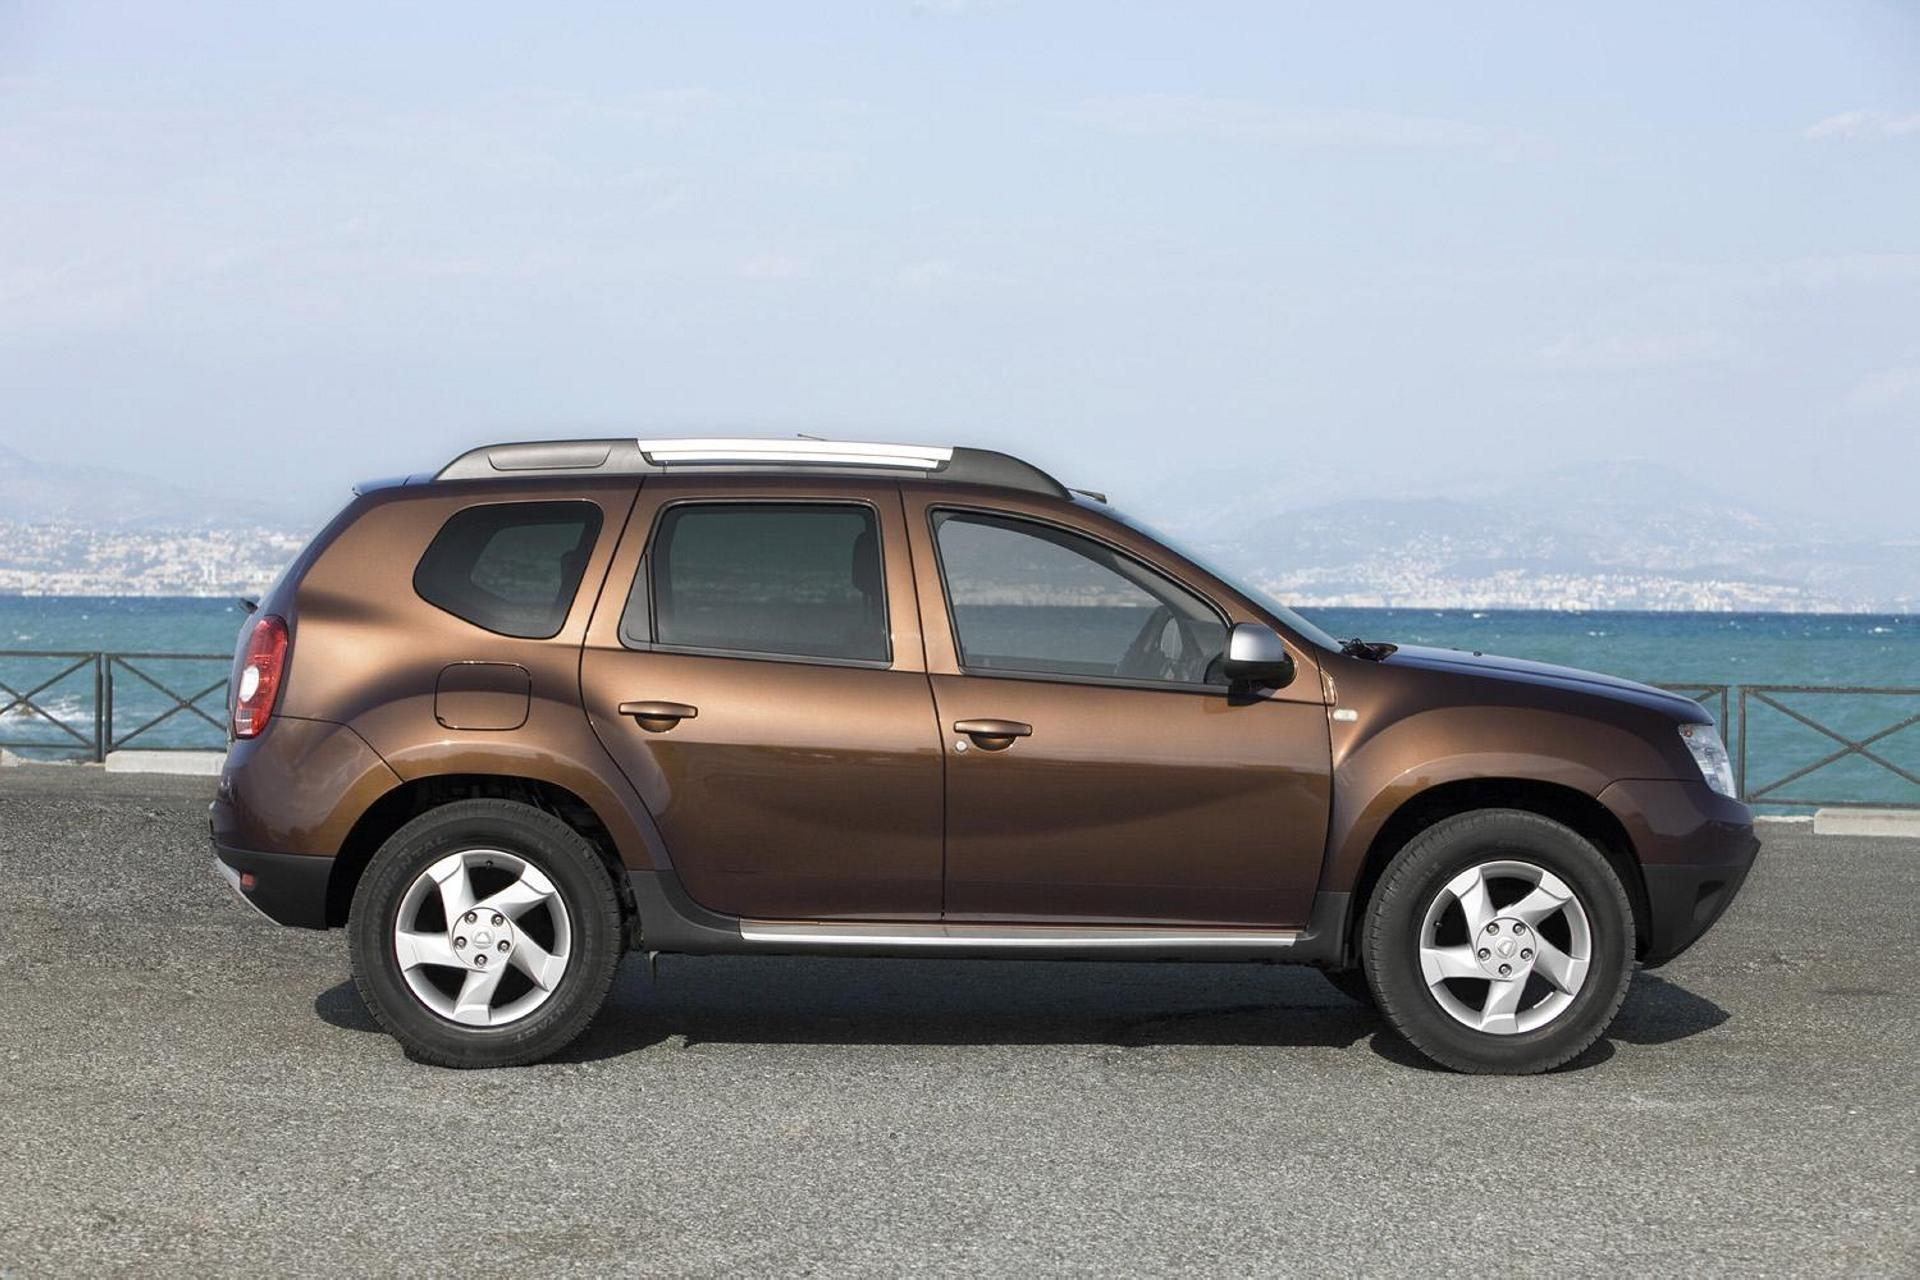 2011 dacia duster news and information for Dacia duster specifications